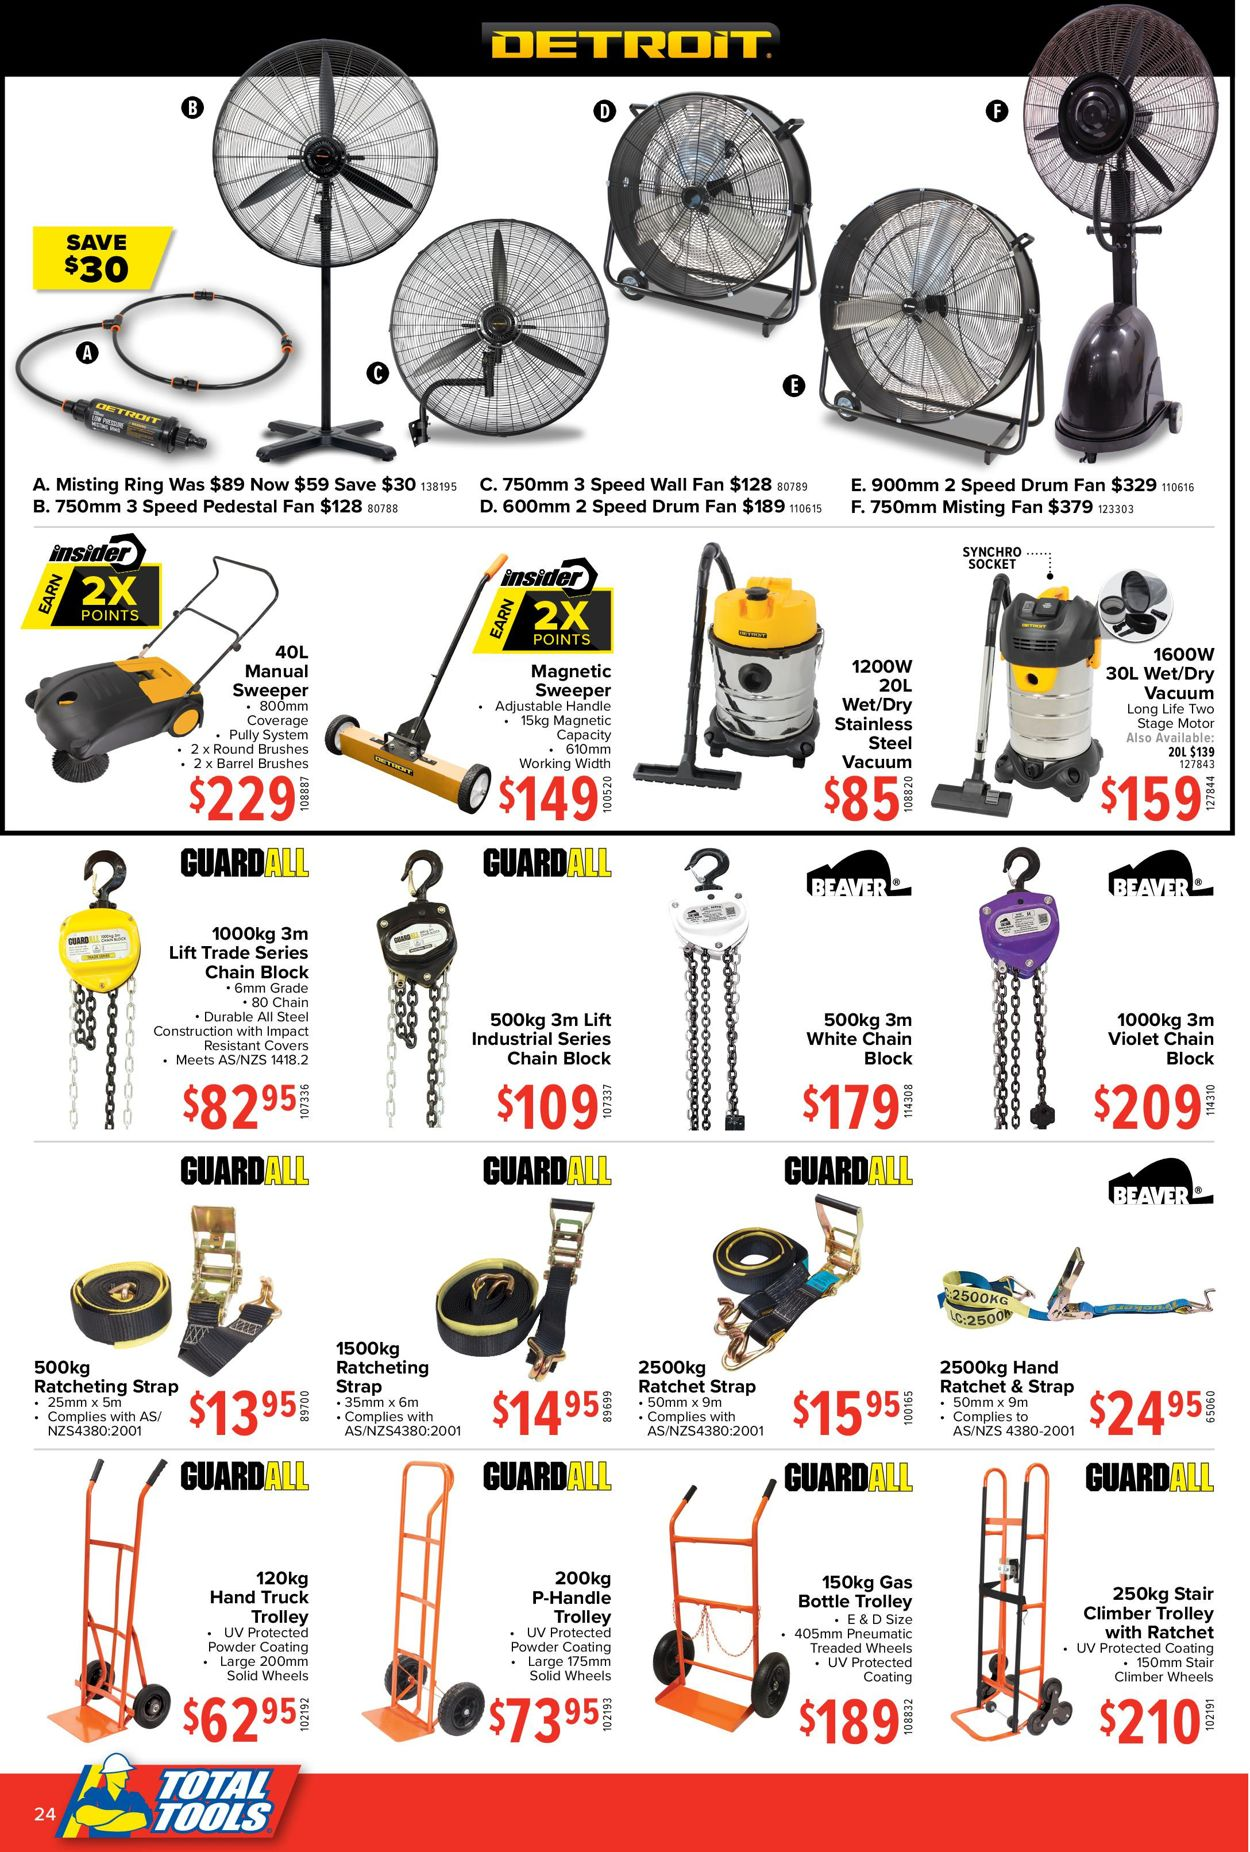 Total Tools - Christmas 2020 Catalogue - 30/11-24/12/2020 (Page 24)